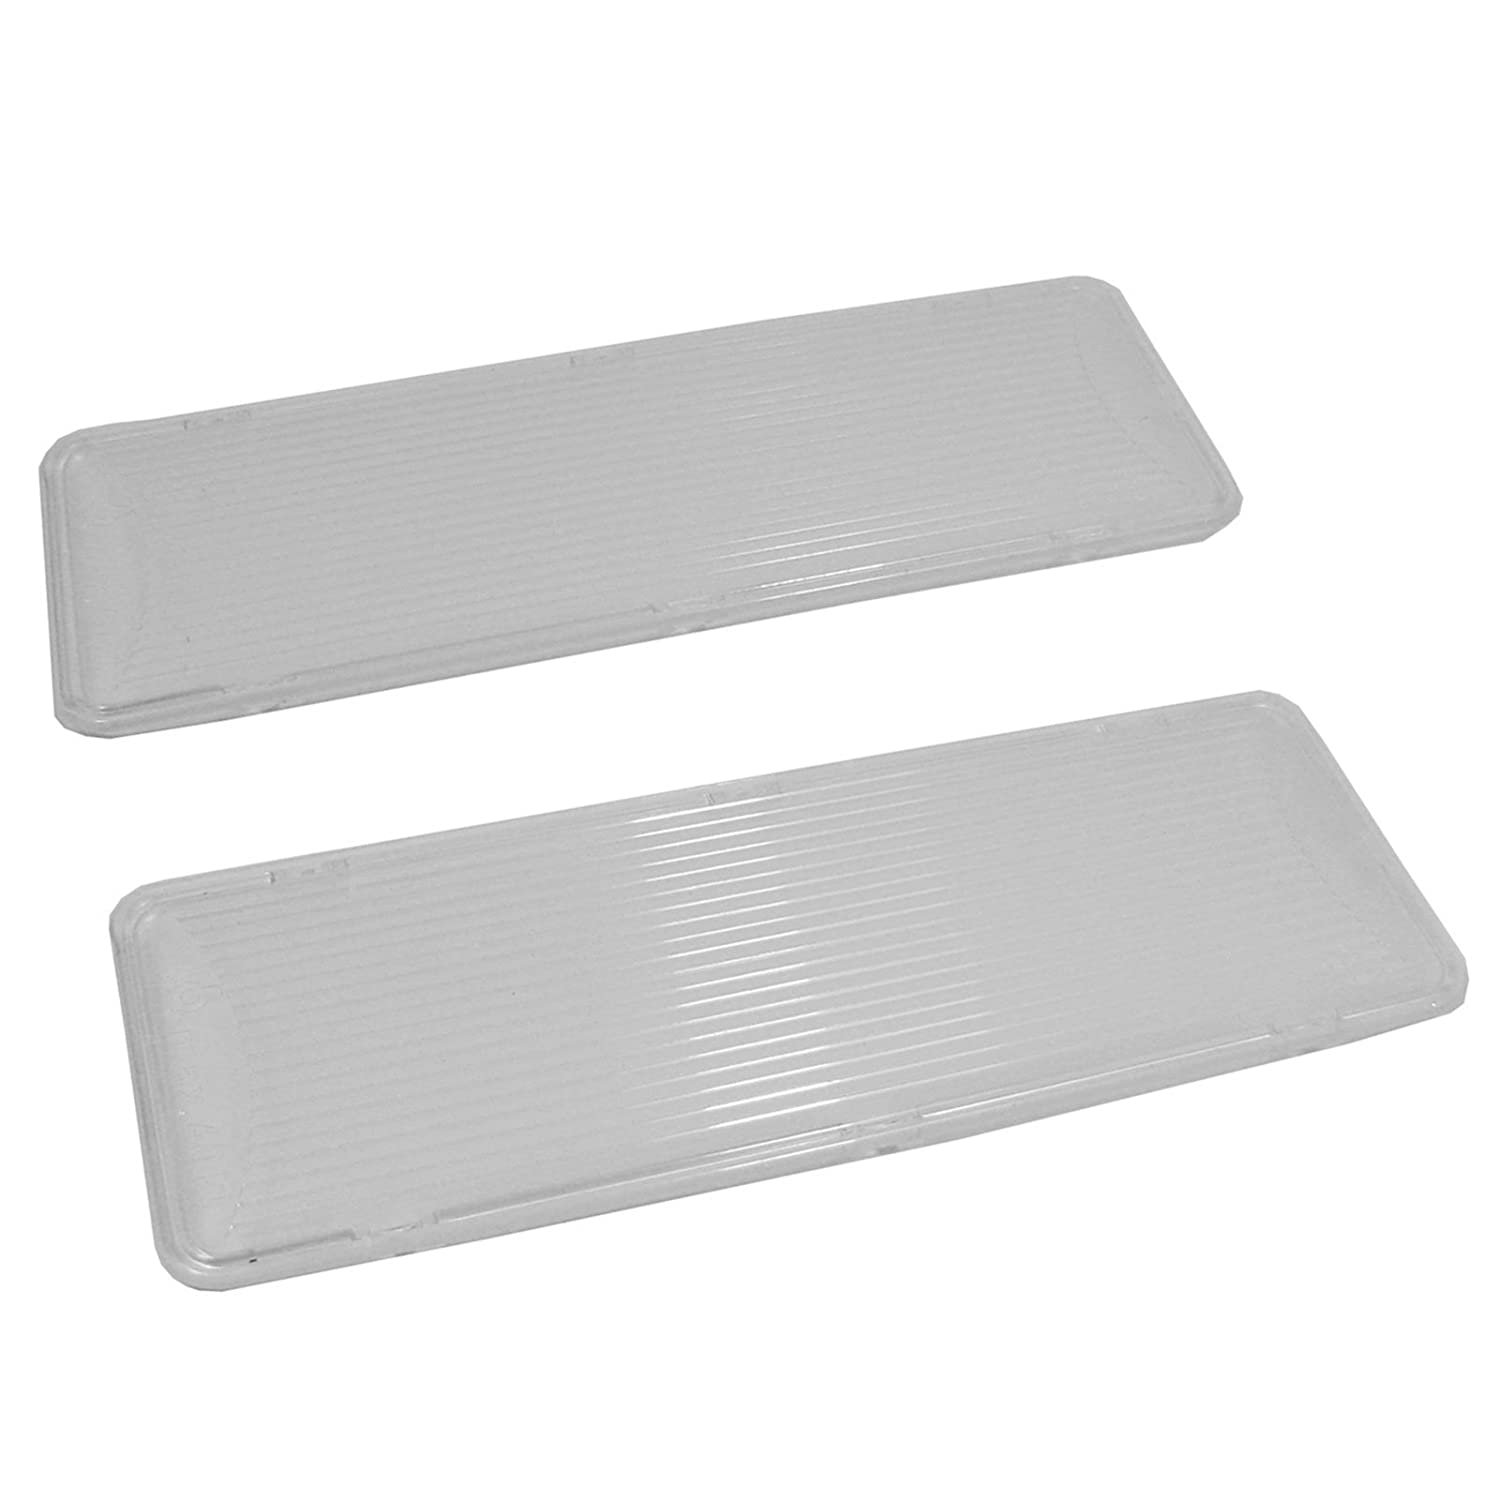 Neff Vent Hood Cooker Extractor Lamp Cover Plates (Pack of 2)